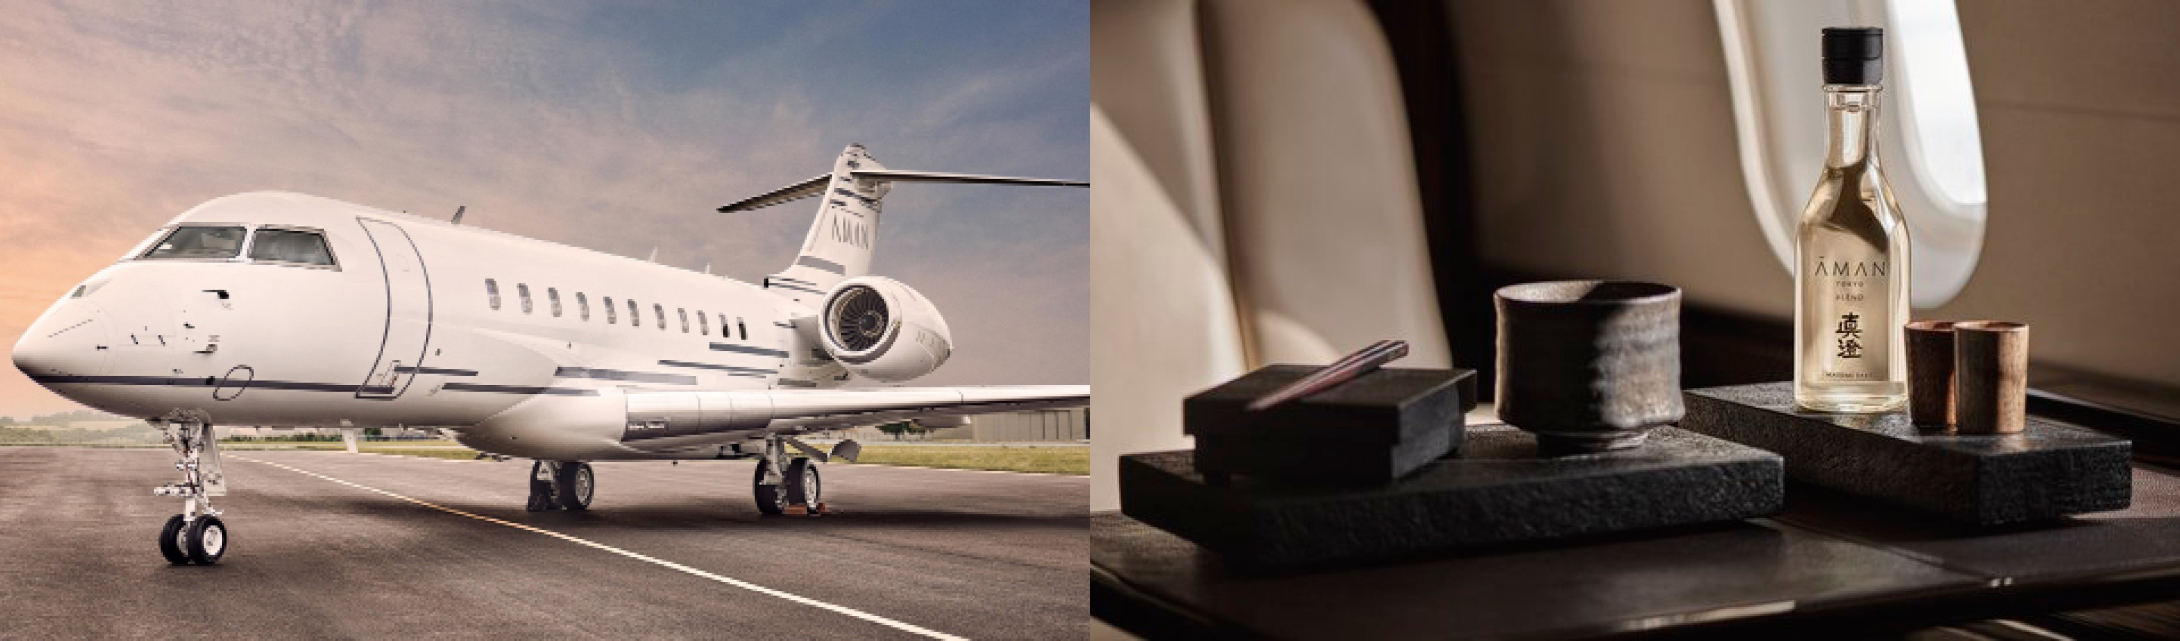 Affluent Travellers Will Increasingly Hire Private Jet, Such As The Aman Jet